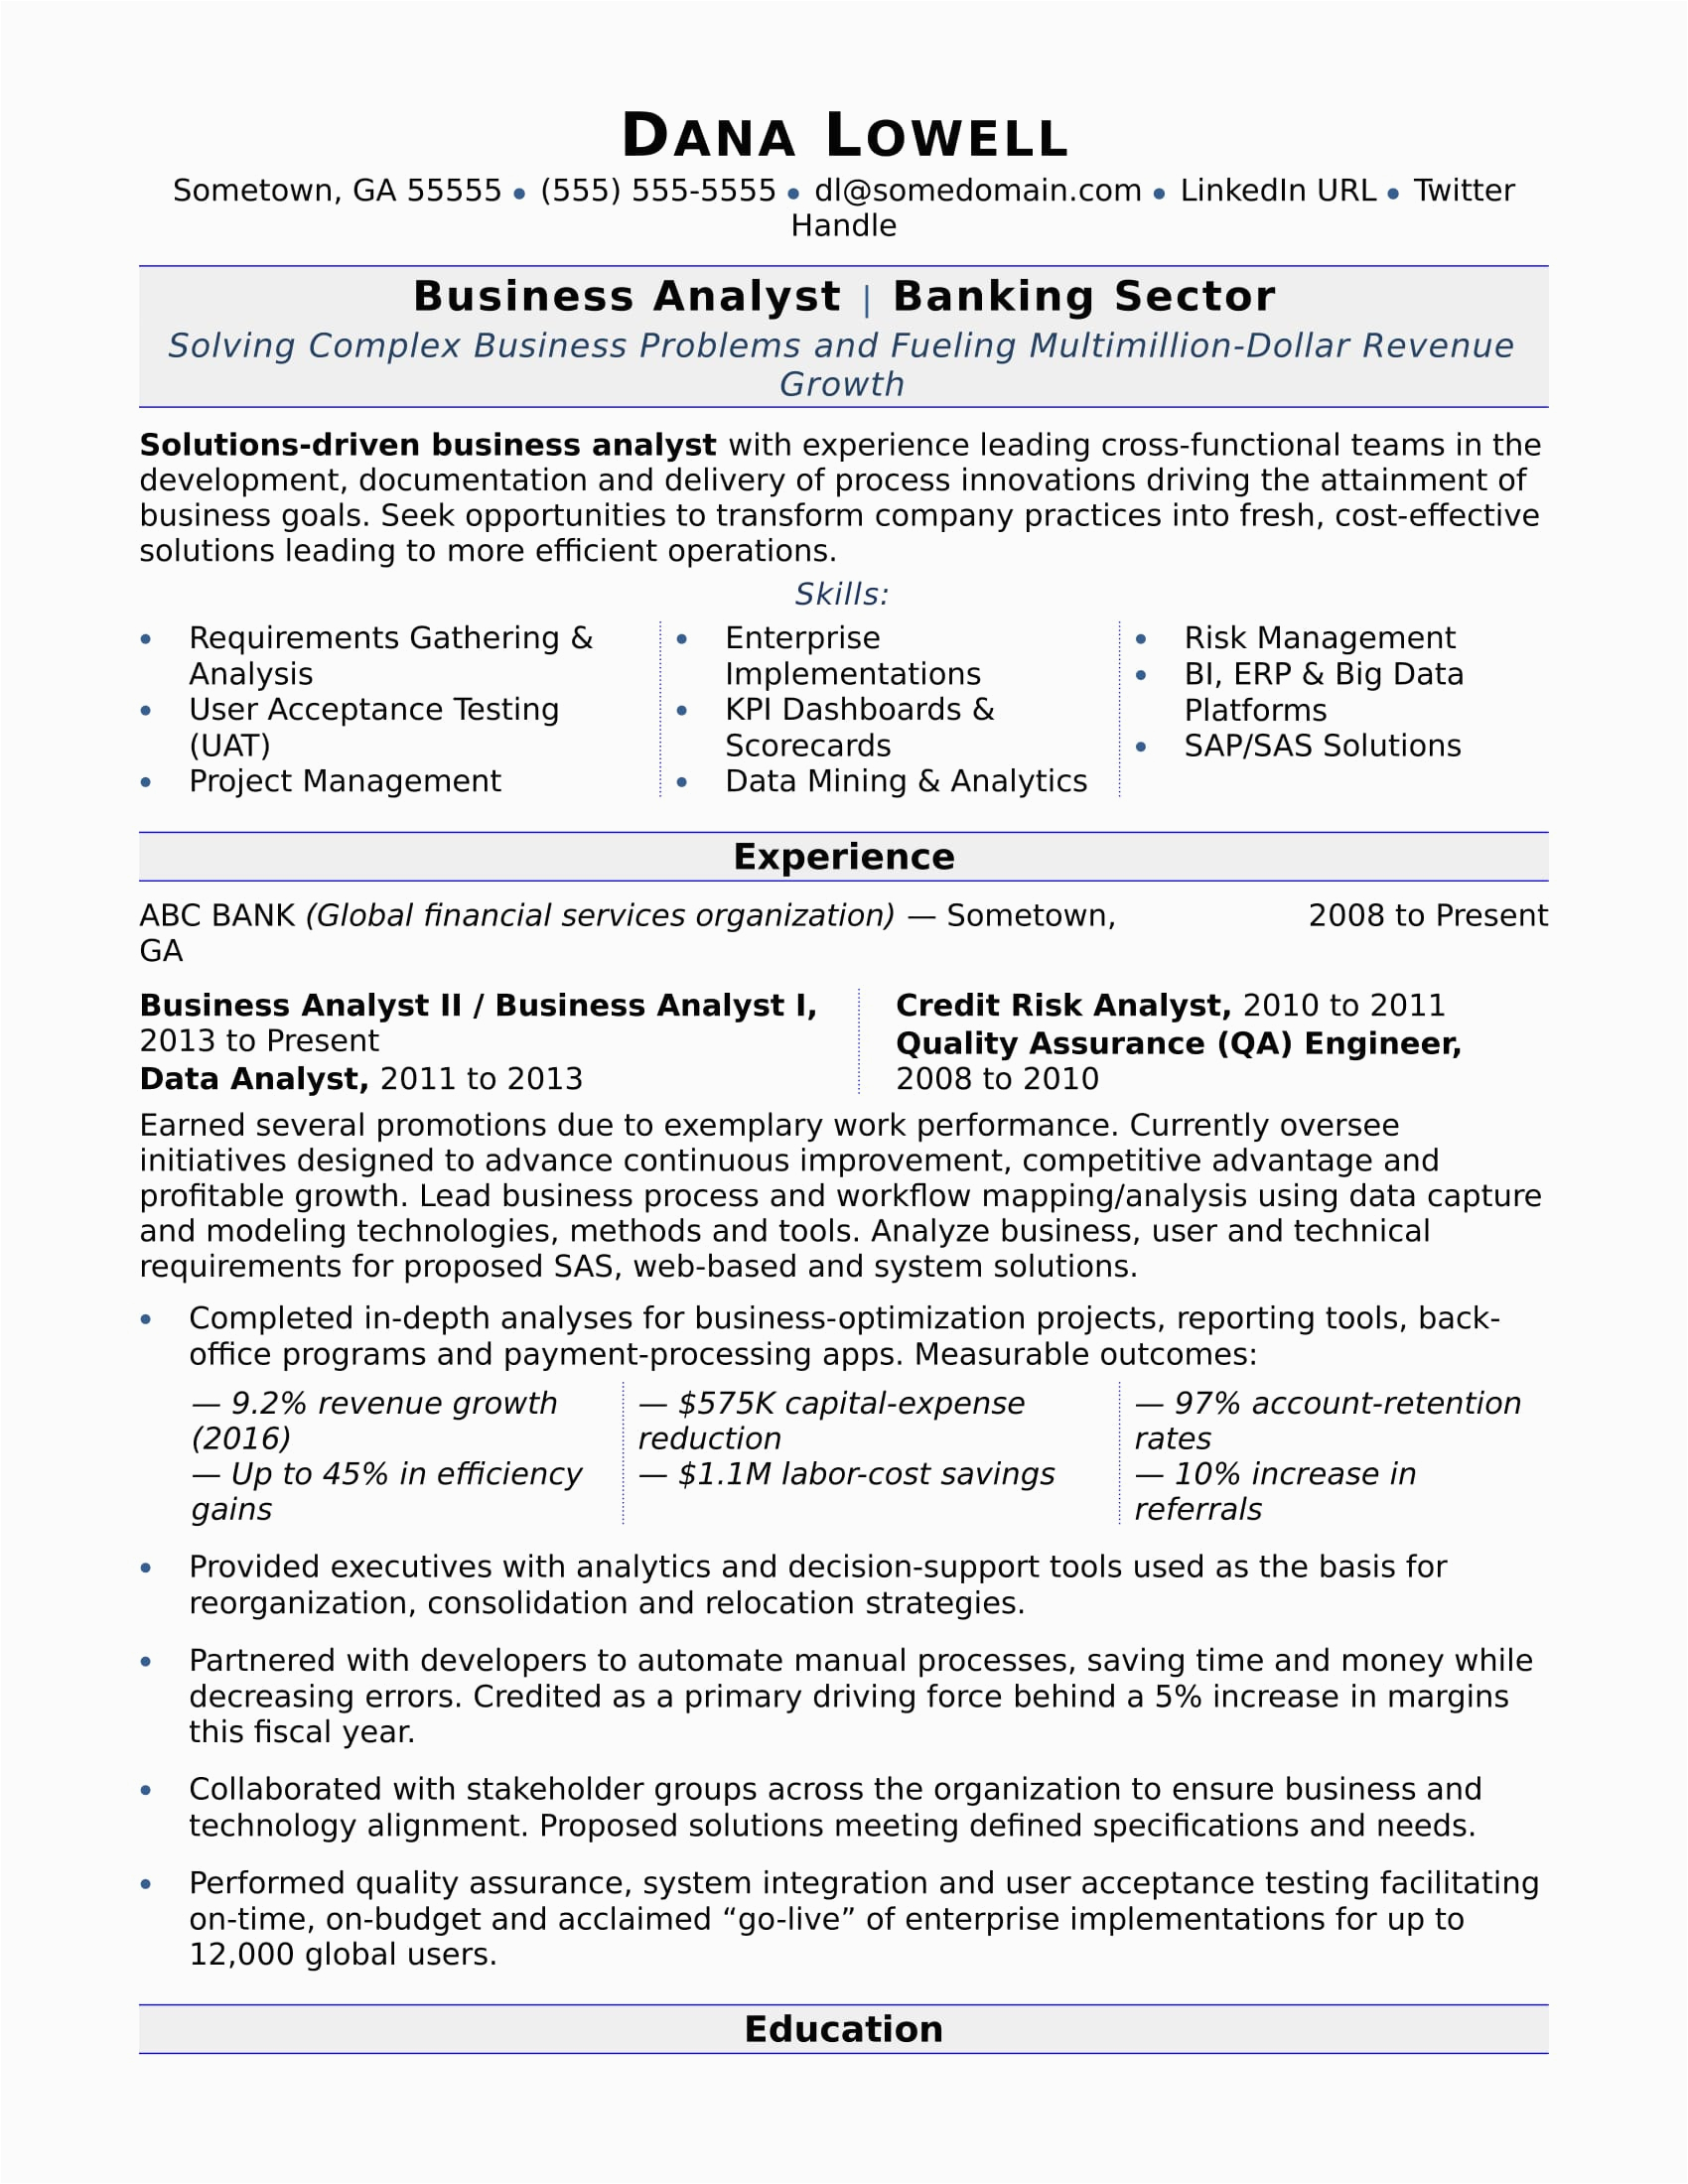 Sample Resume Summary for Business Analyst Business Analyst Resume Sample